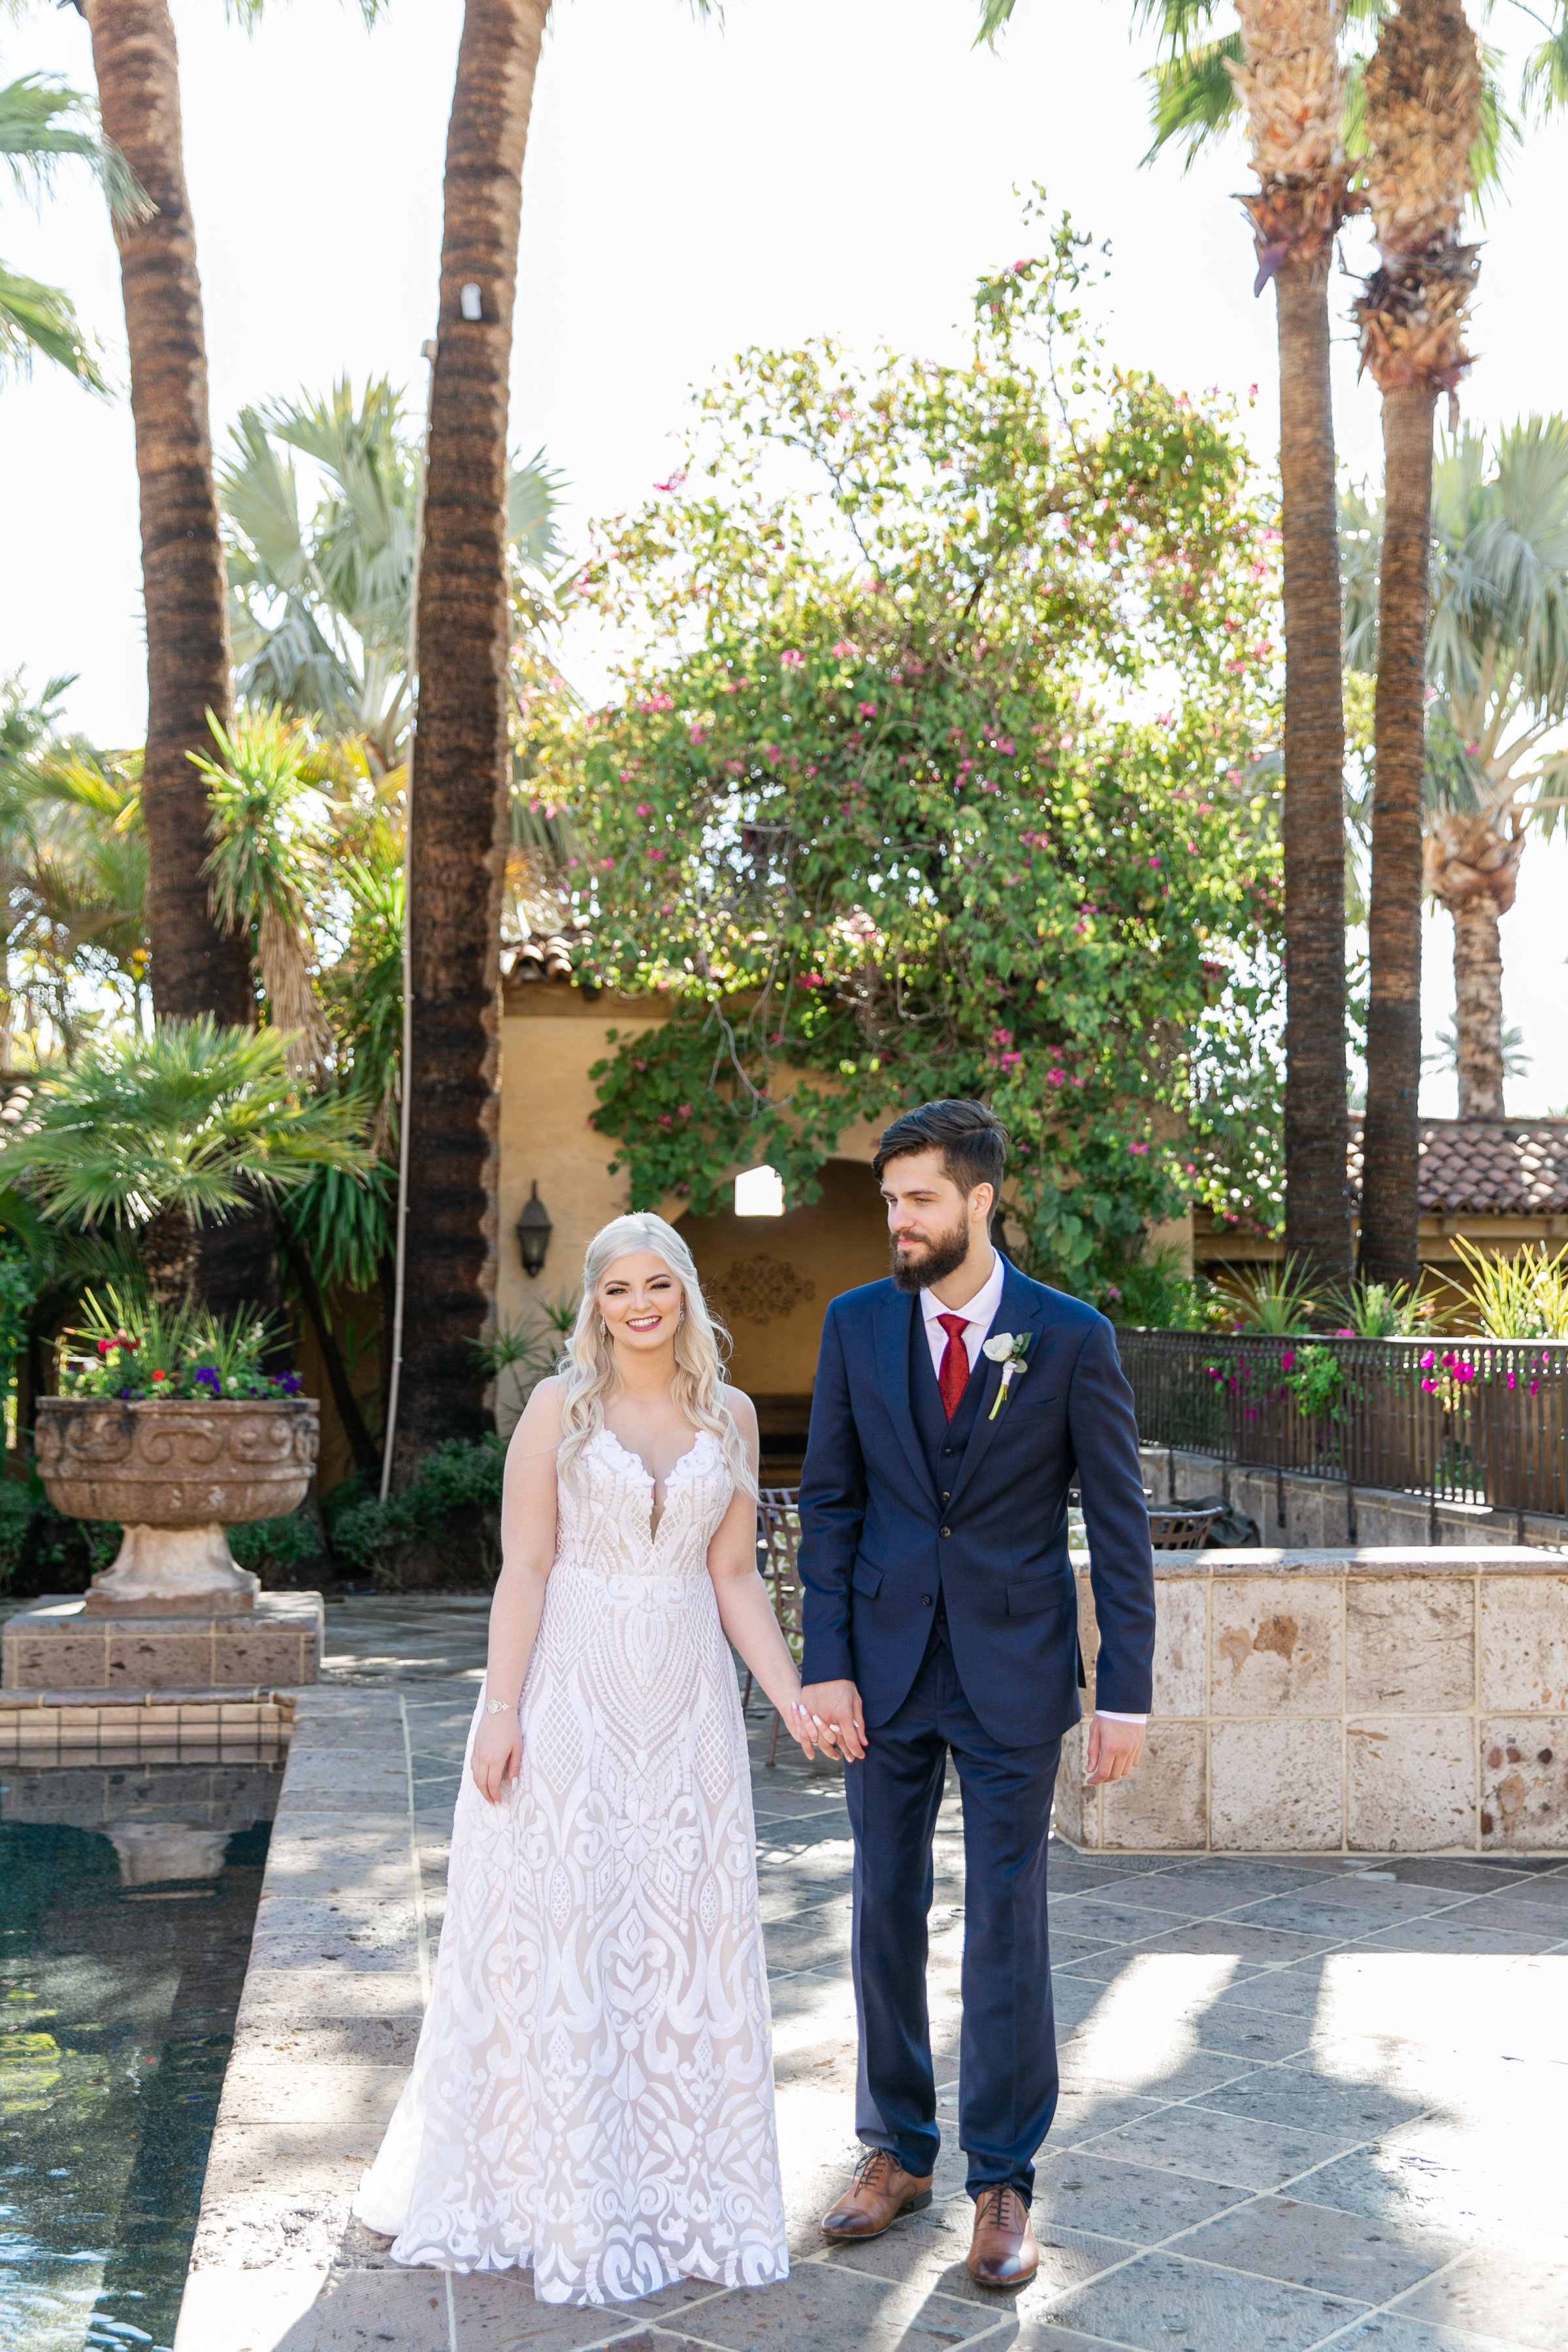 Karlie Colleen Photography - The Royal Palms Wedding - Some Like It Classic - Alex & Sam-134